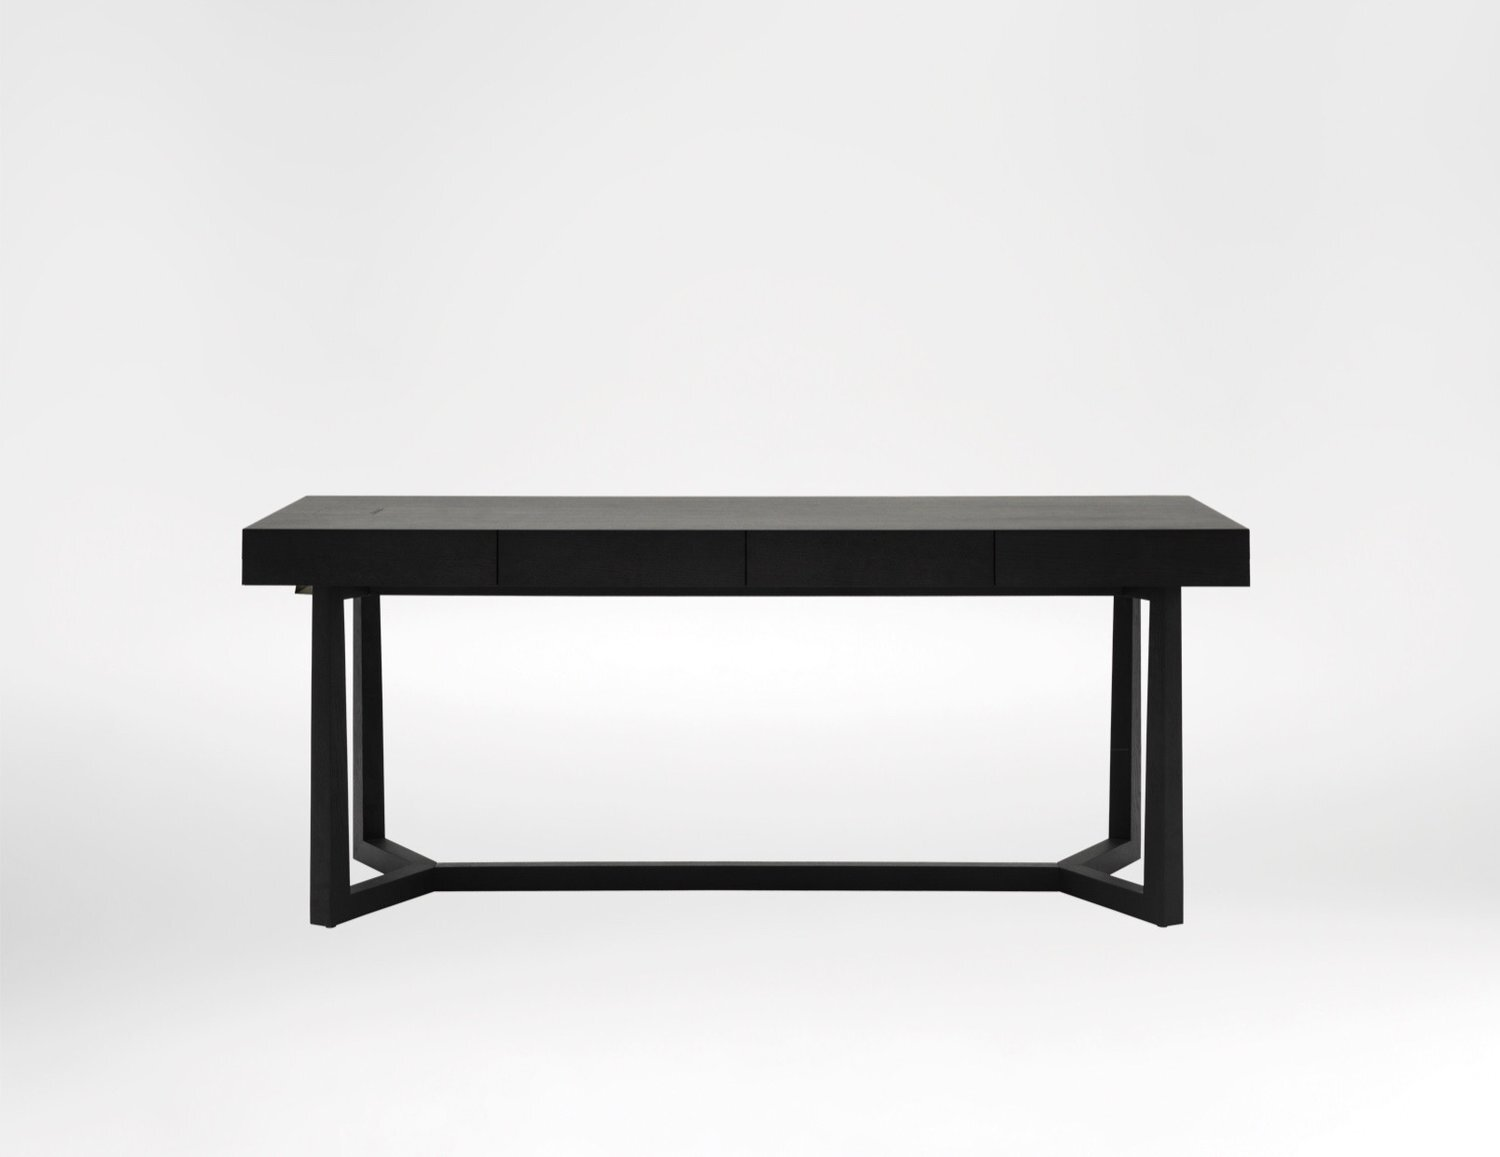 Vessel Desk - The Vessel Desk is a refined, casual office desk for any workspace.